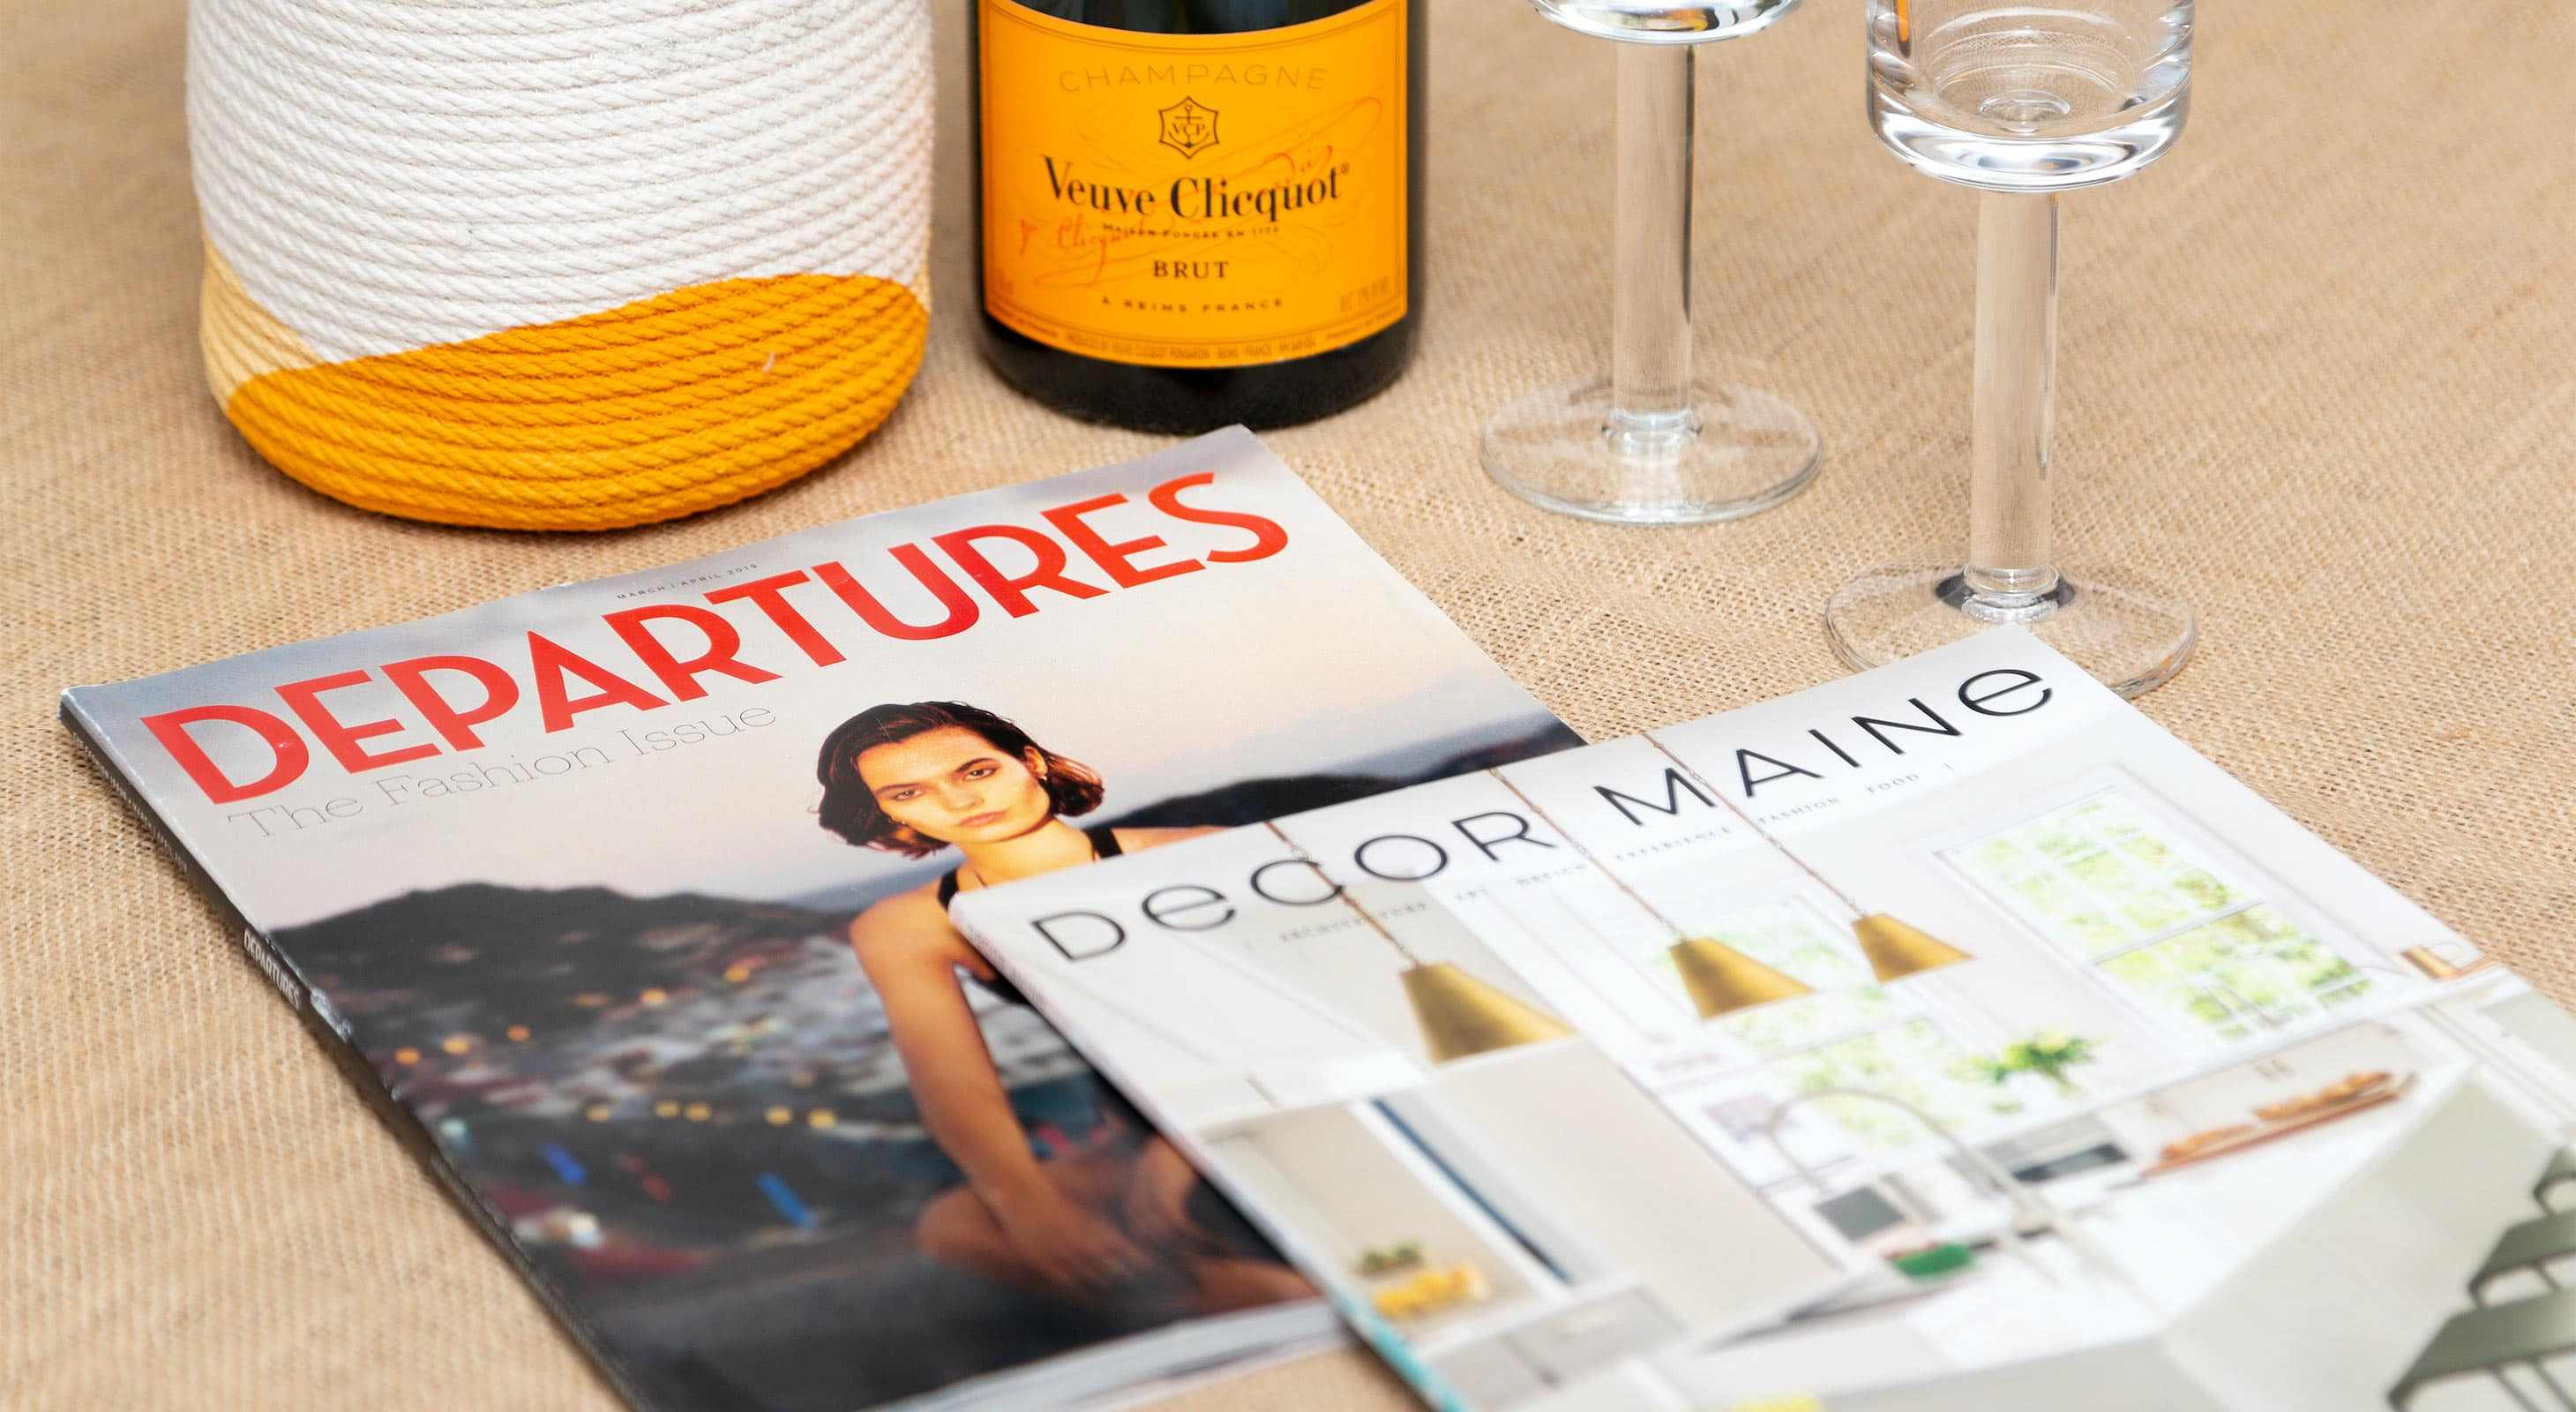 Table set with Magazines including Decor Maine and Departures